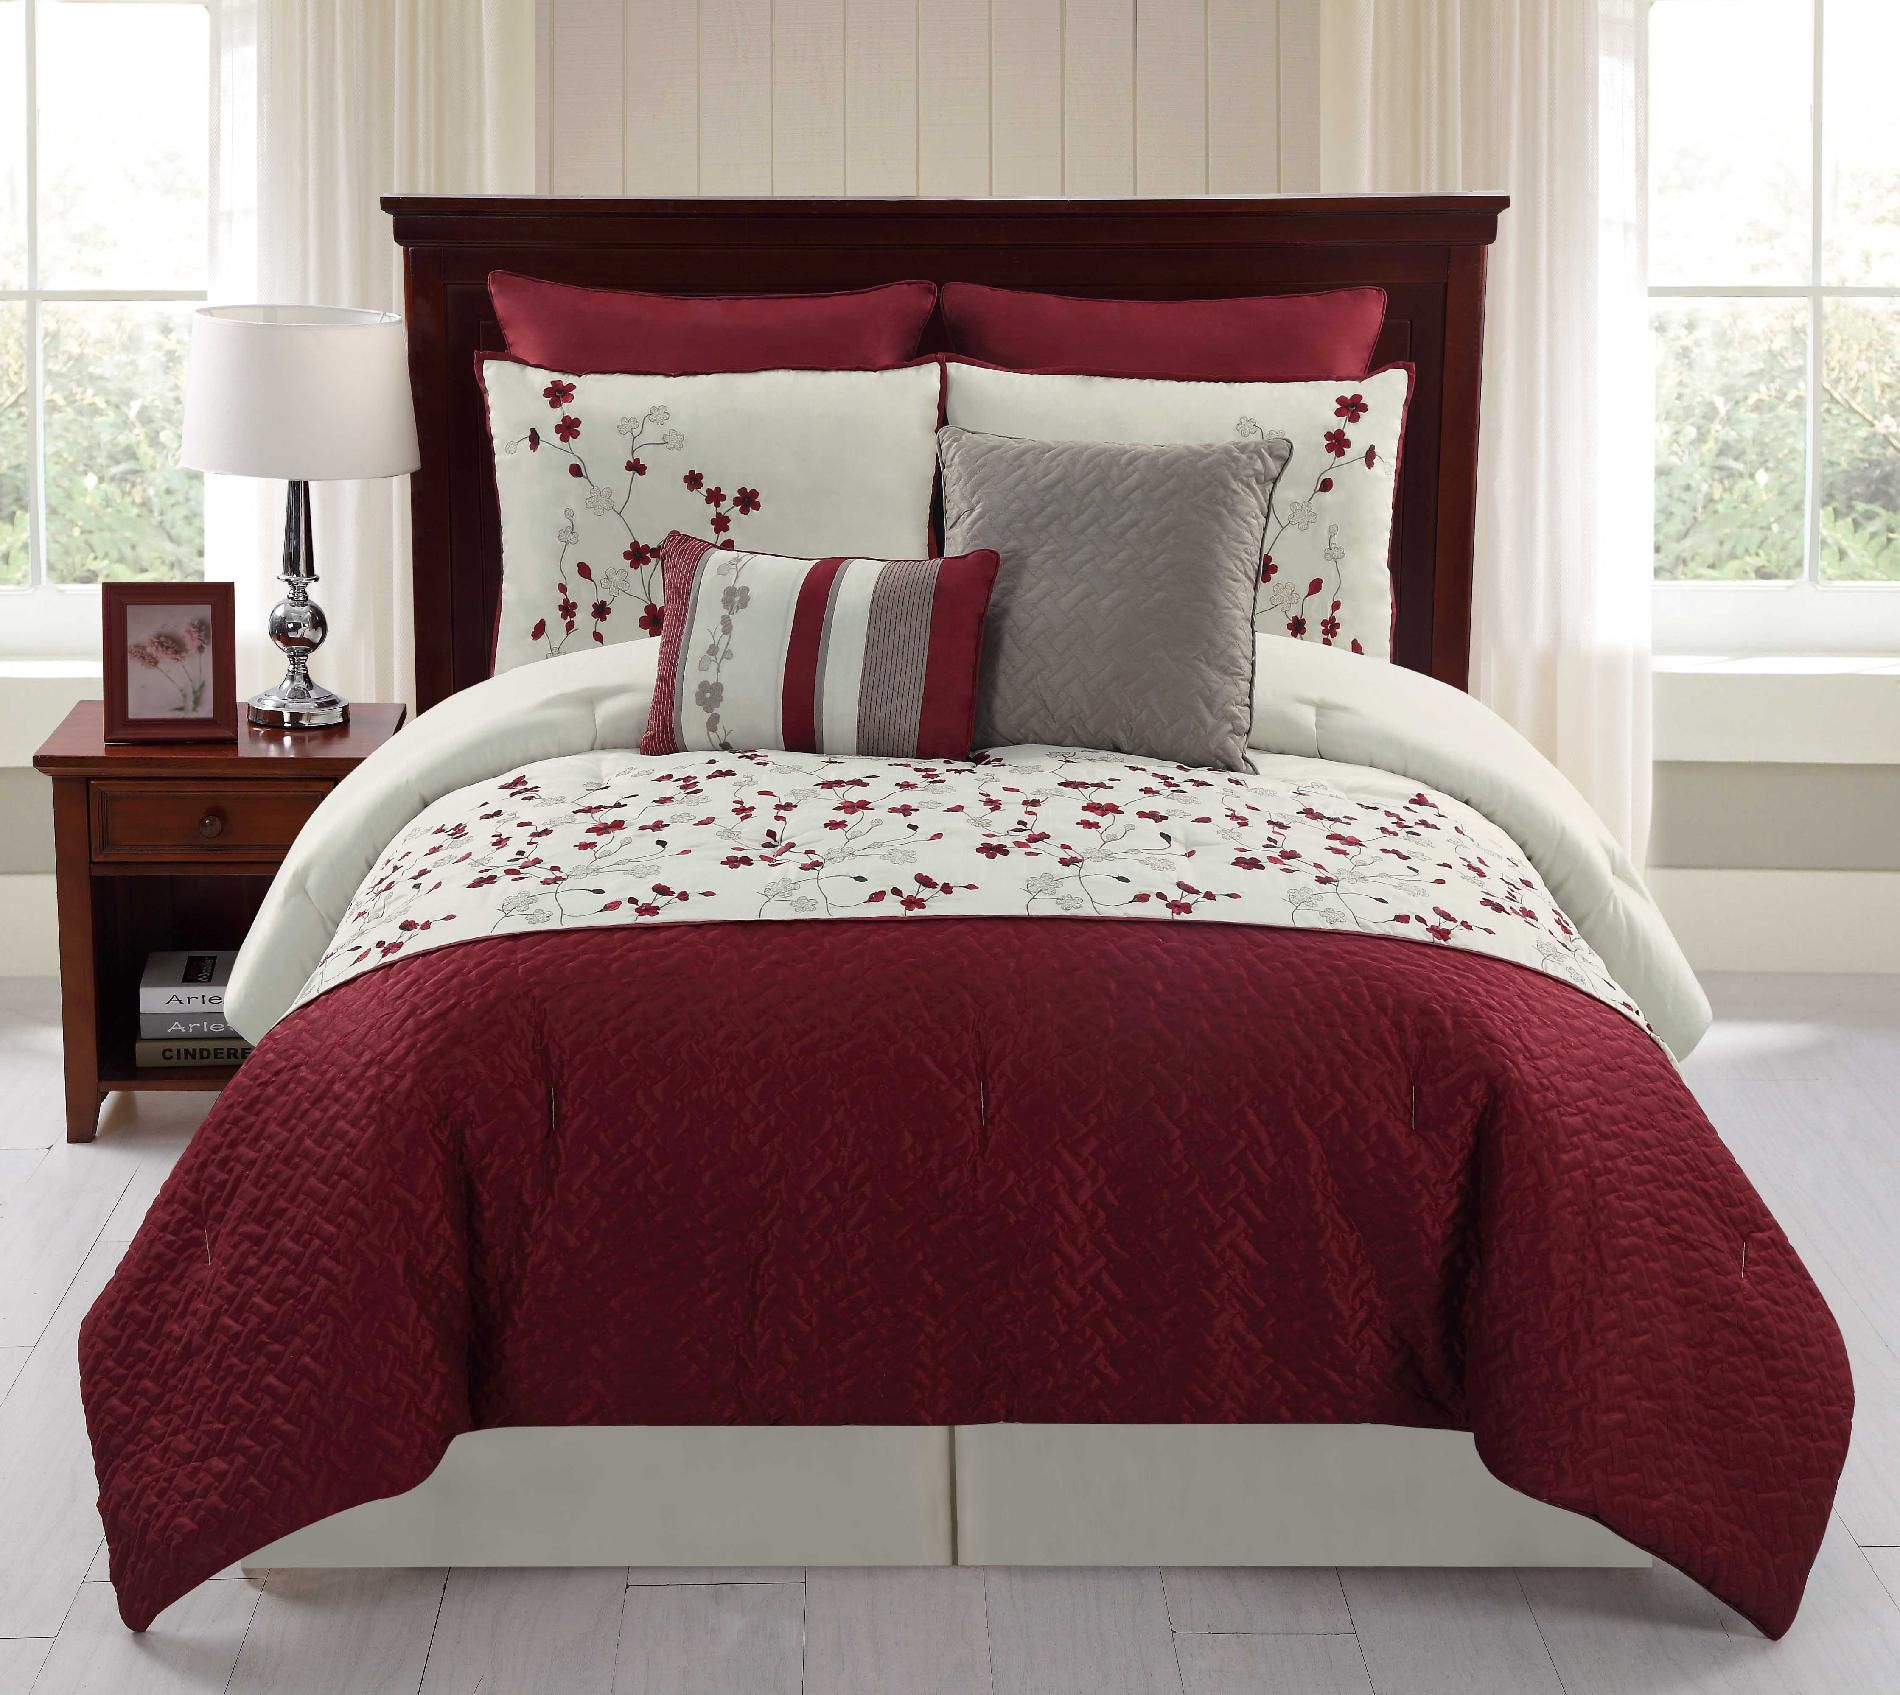 8pc Comforter Set Sadie Bed Bath Decorative Bedding Comforters